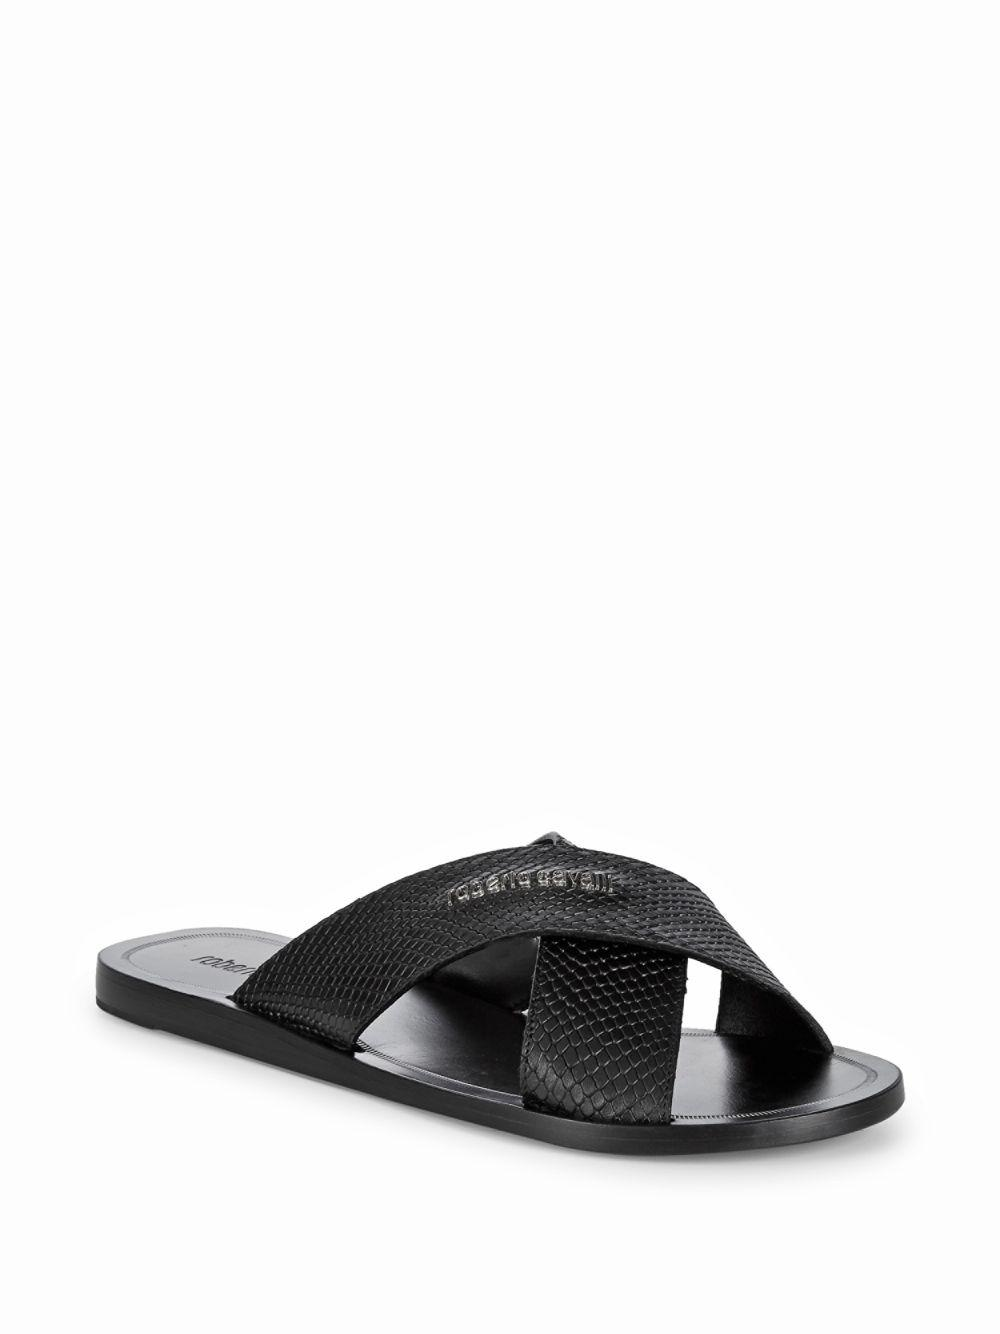 65a43f20fcd7 Roberto Cavalli Cross Band Leather Sandals in Black for Men - Save ...